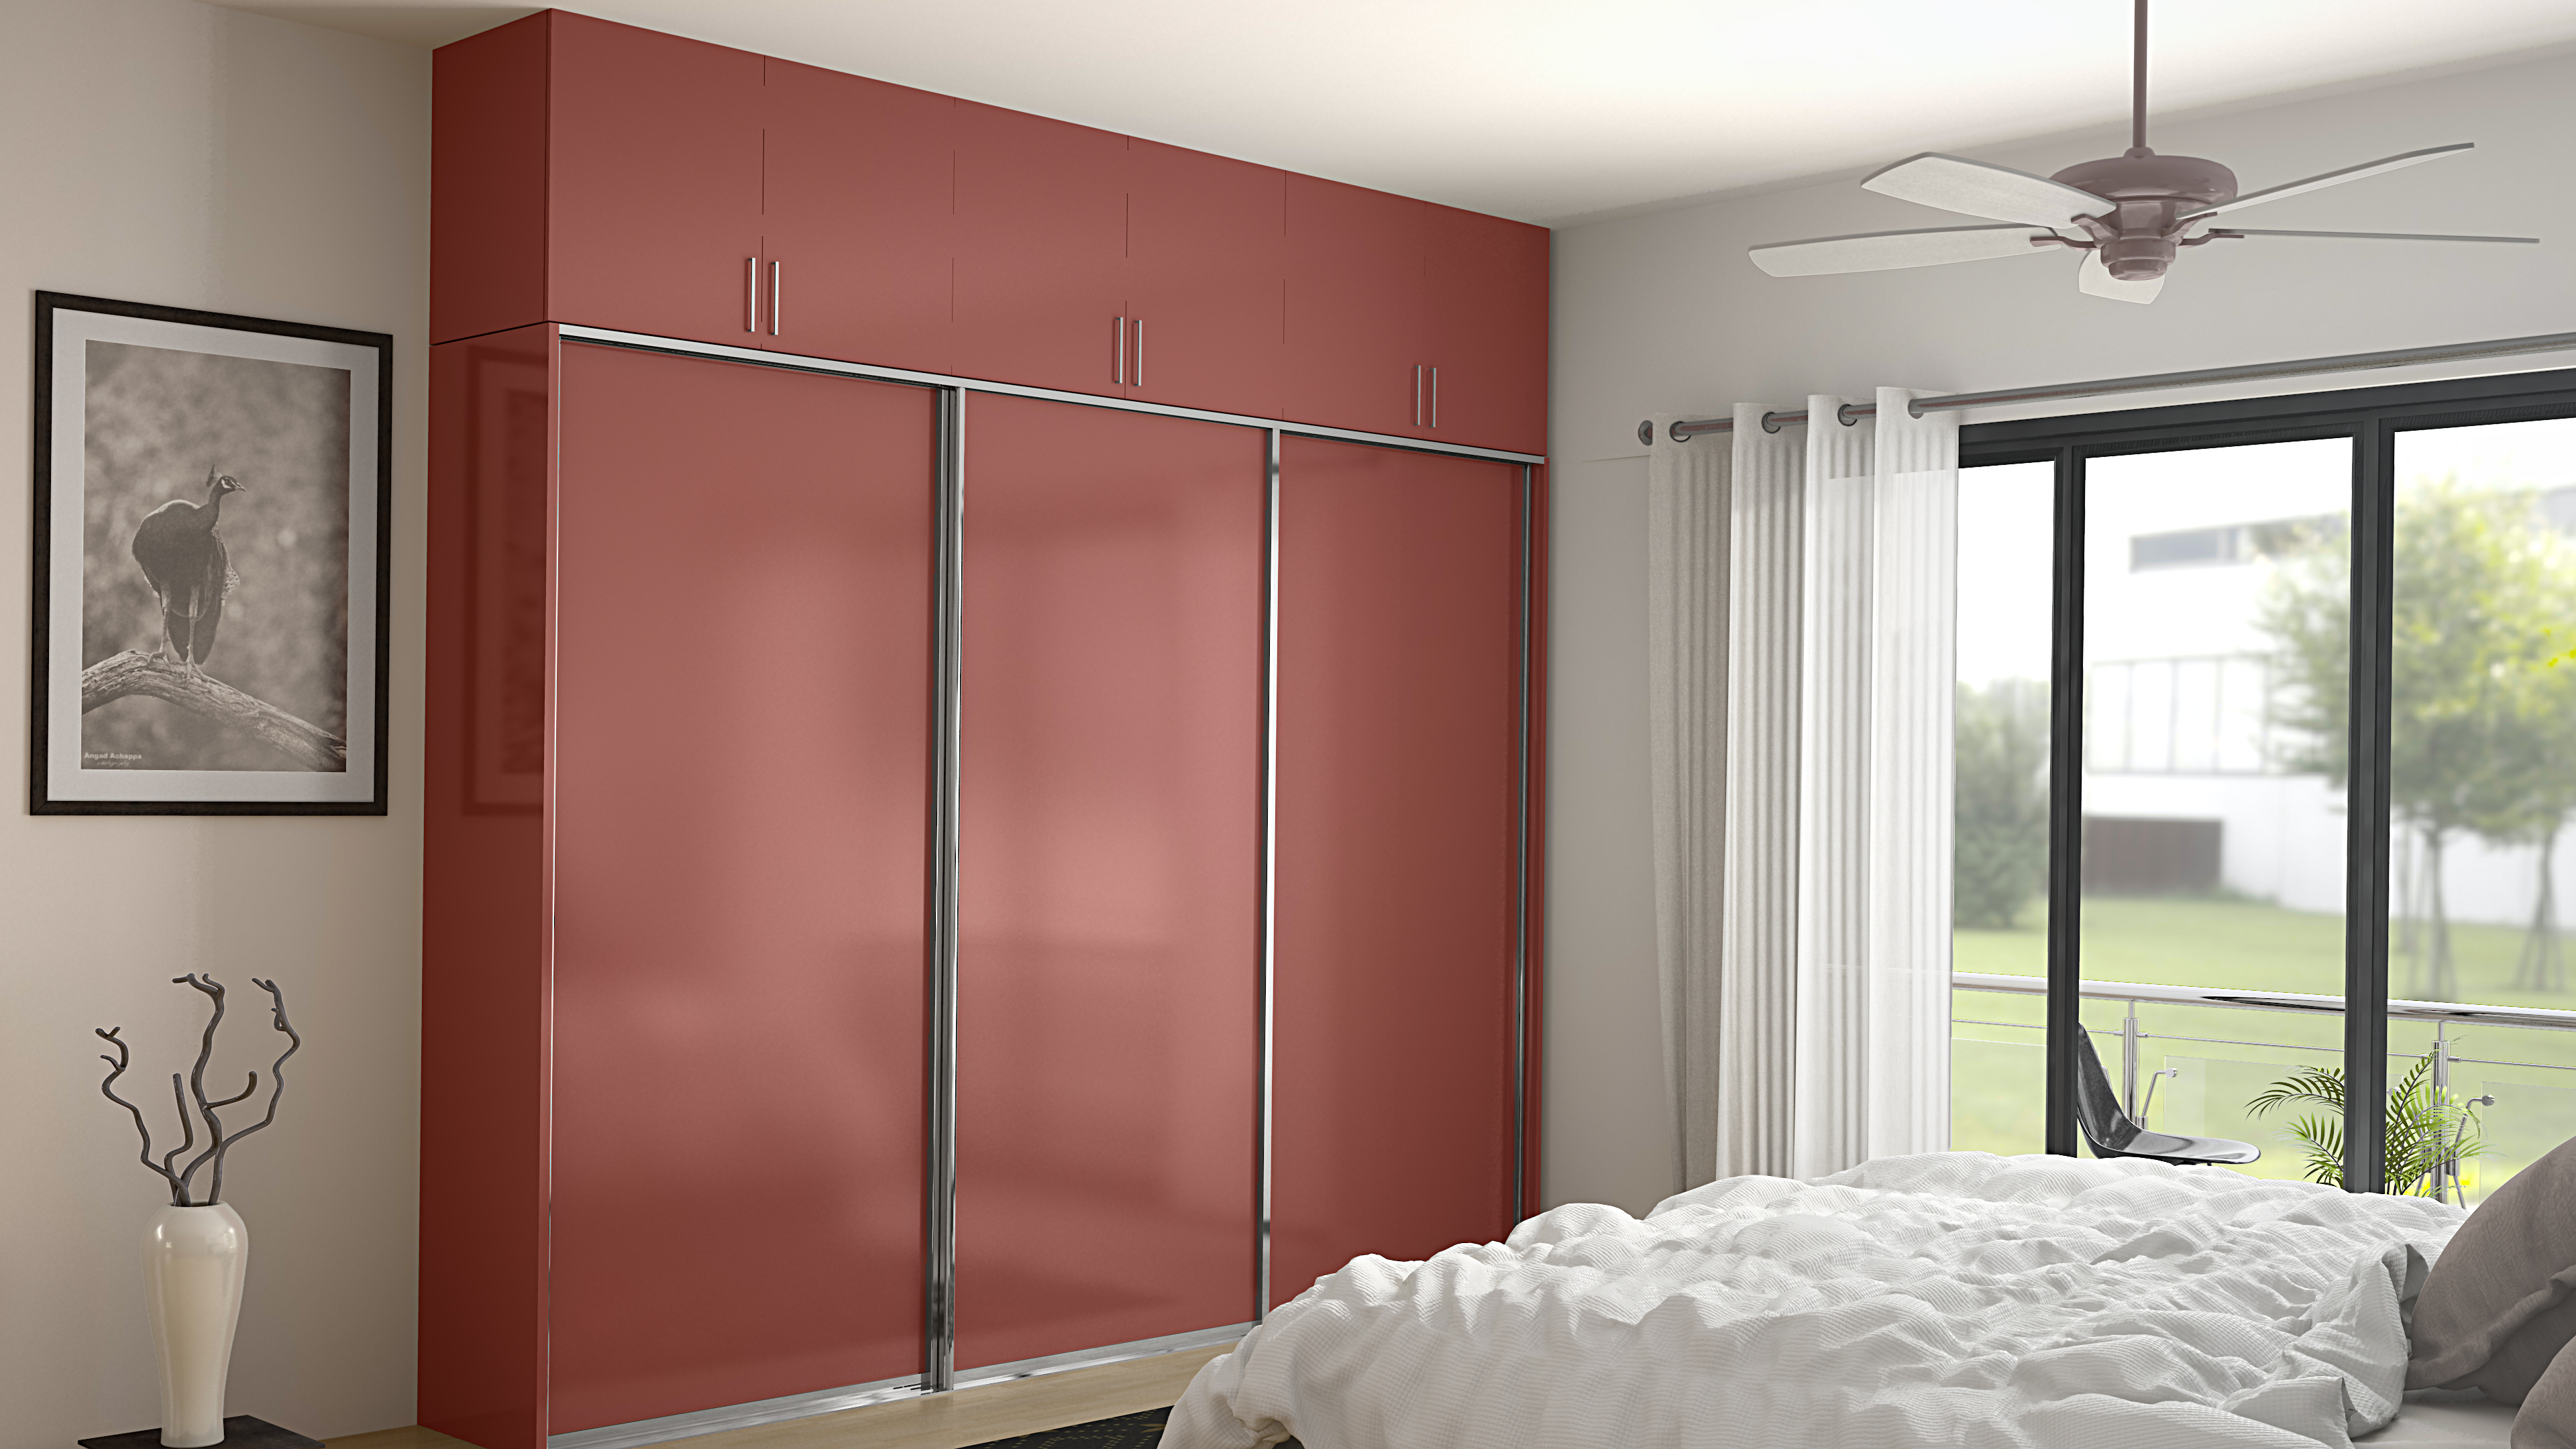 6 trendy wardrobe door designs from homelane homelane - Wardrobe design ...